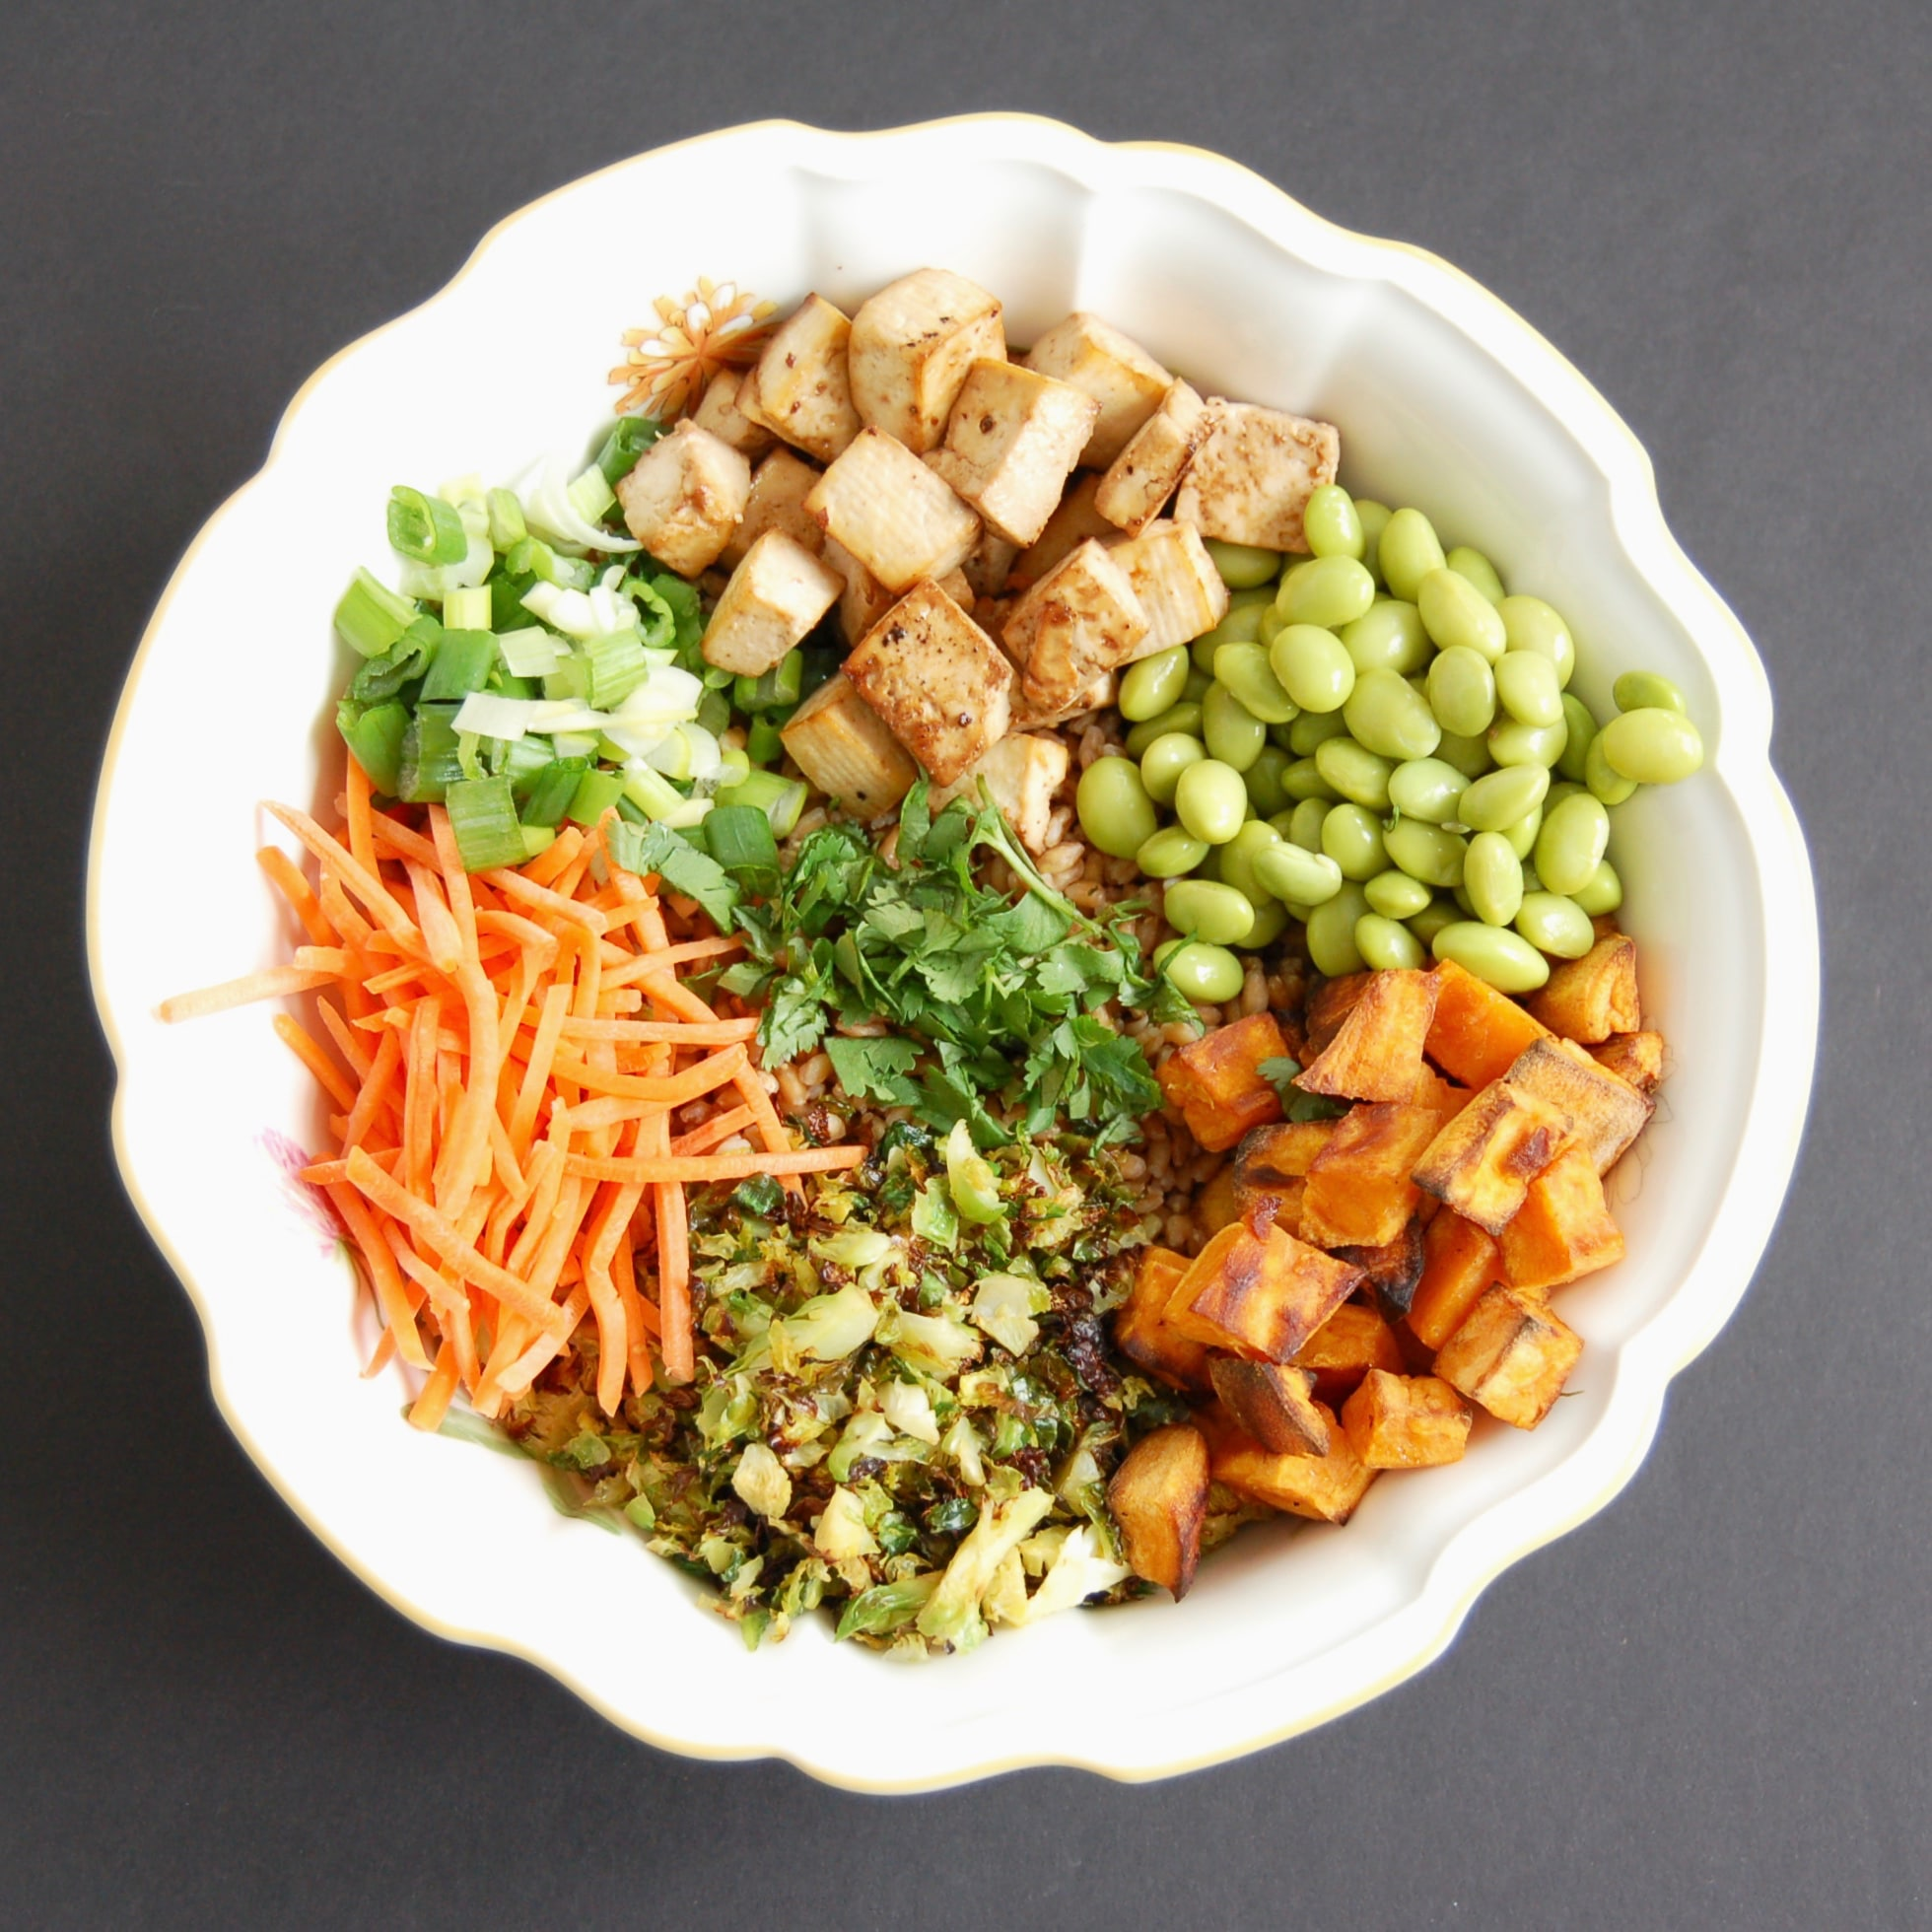 Asian-Style Farro Buddha Bowl with Crispy Baked Tofu | Whole grain farro is topped with shredded carrots, edamame, roasted Brussels sprouts and sweet potatoes, and crispy baked tofu and then tossed with a miso sesame dressing for a vegetarian and vegan-friendly meal the whole family will love. Get the vegetarian, egg-free, and dairy-free recipe @jlevinsonrd.